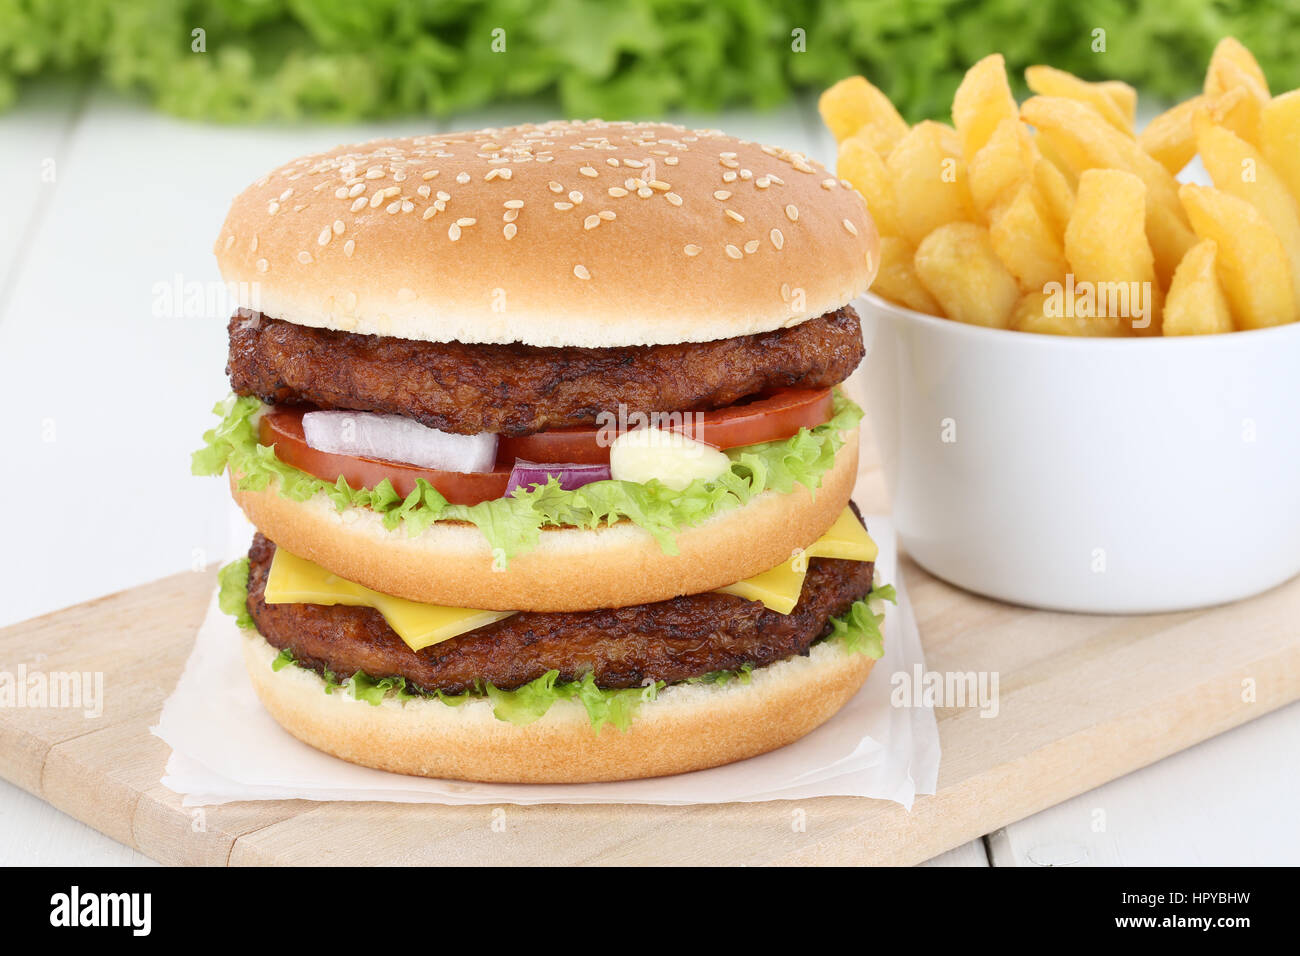 Double burger hamburger with fries tomatoes lettuce cheese unhealthy - Stock Image